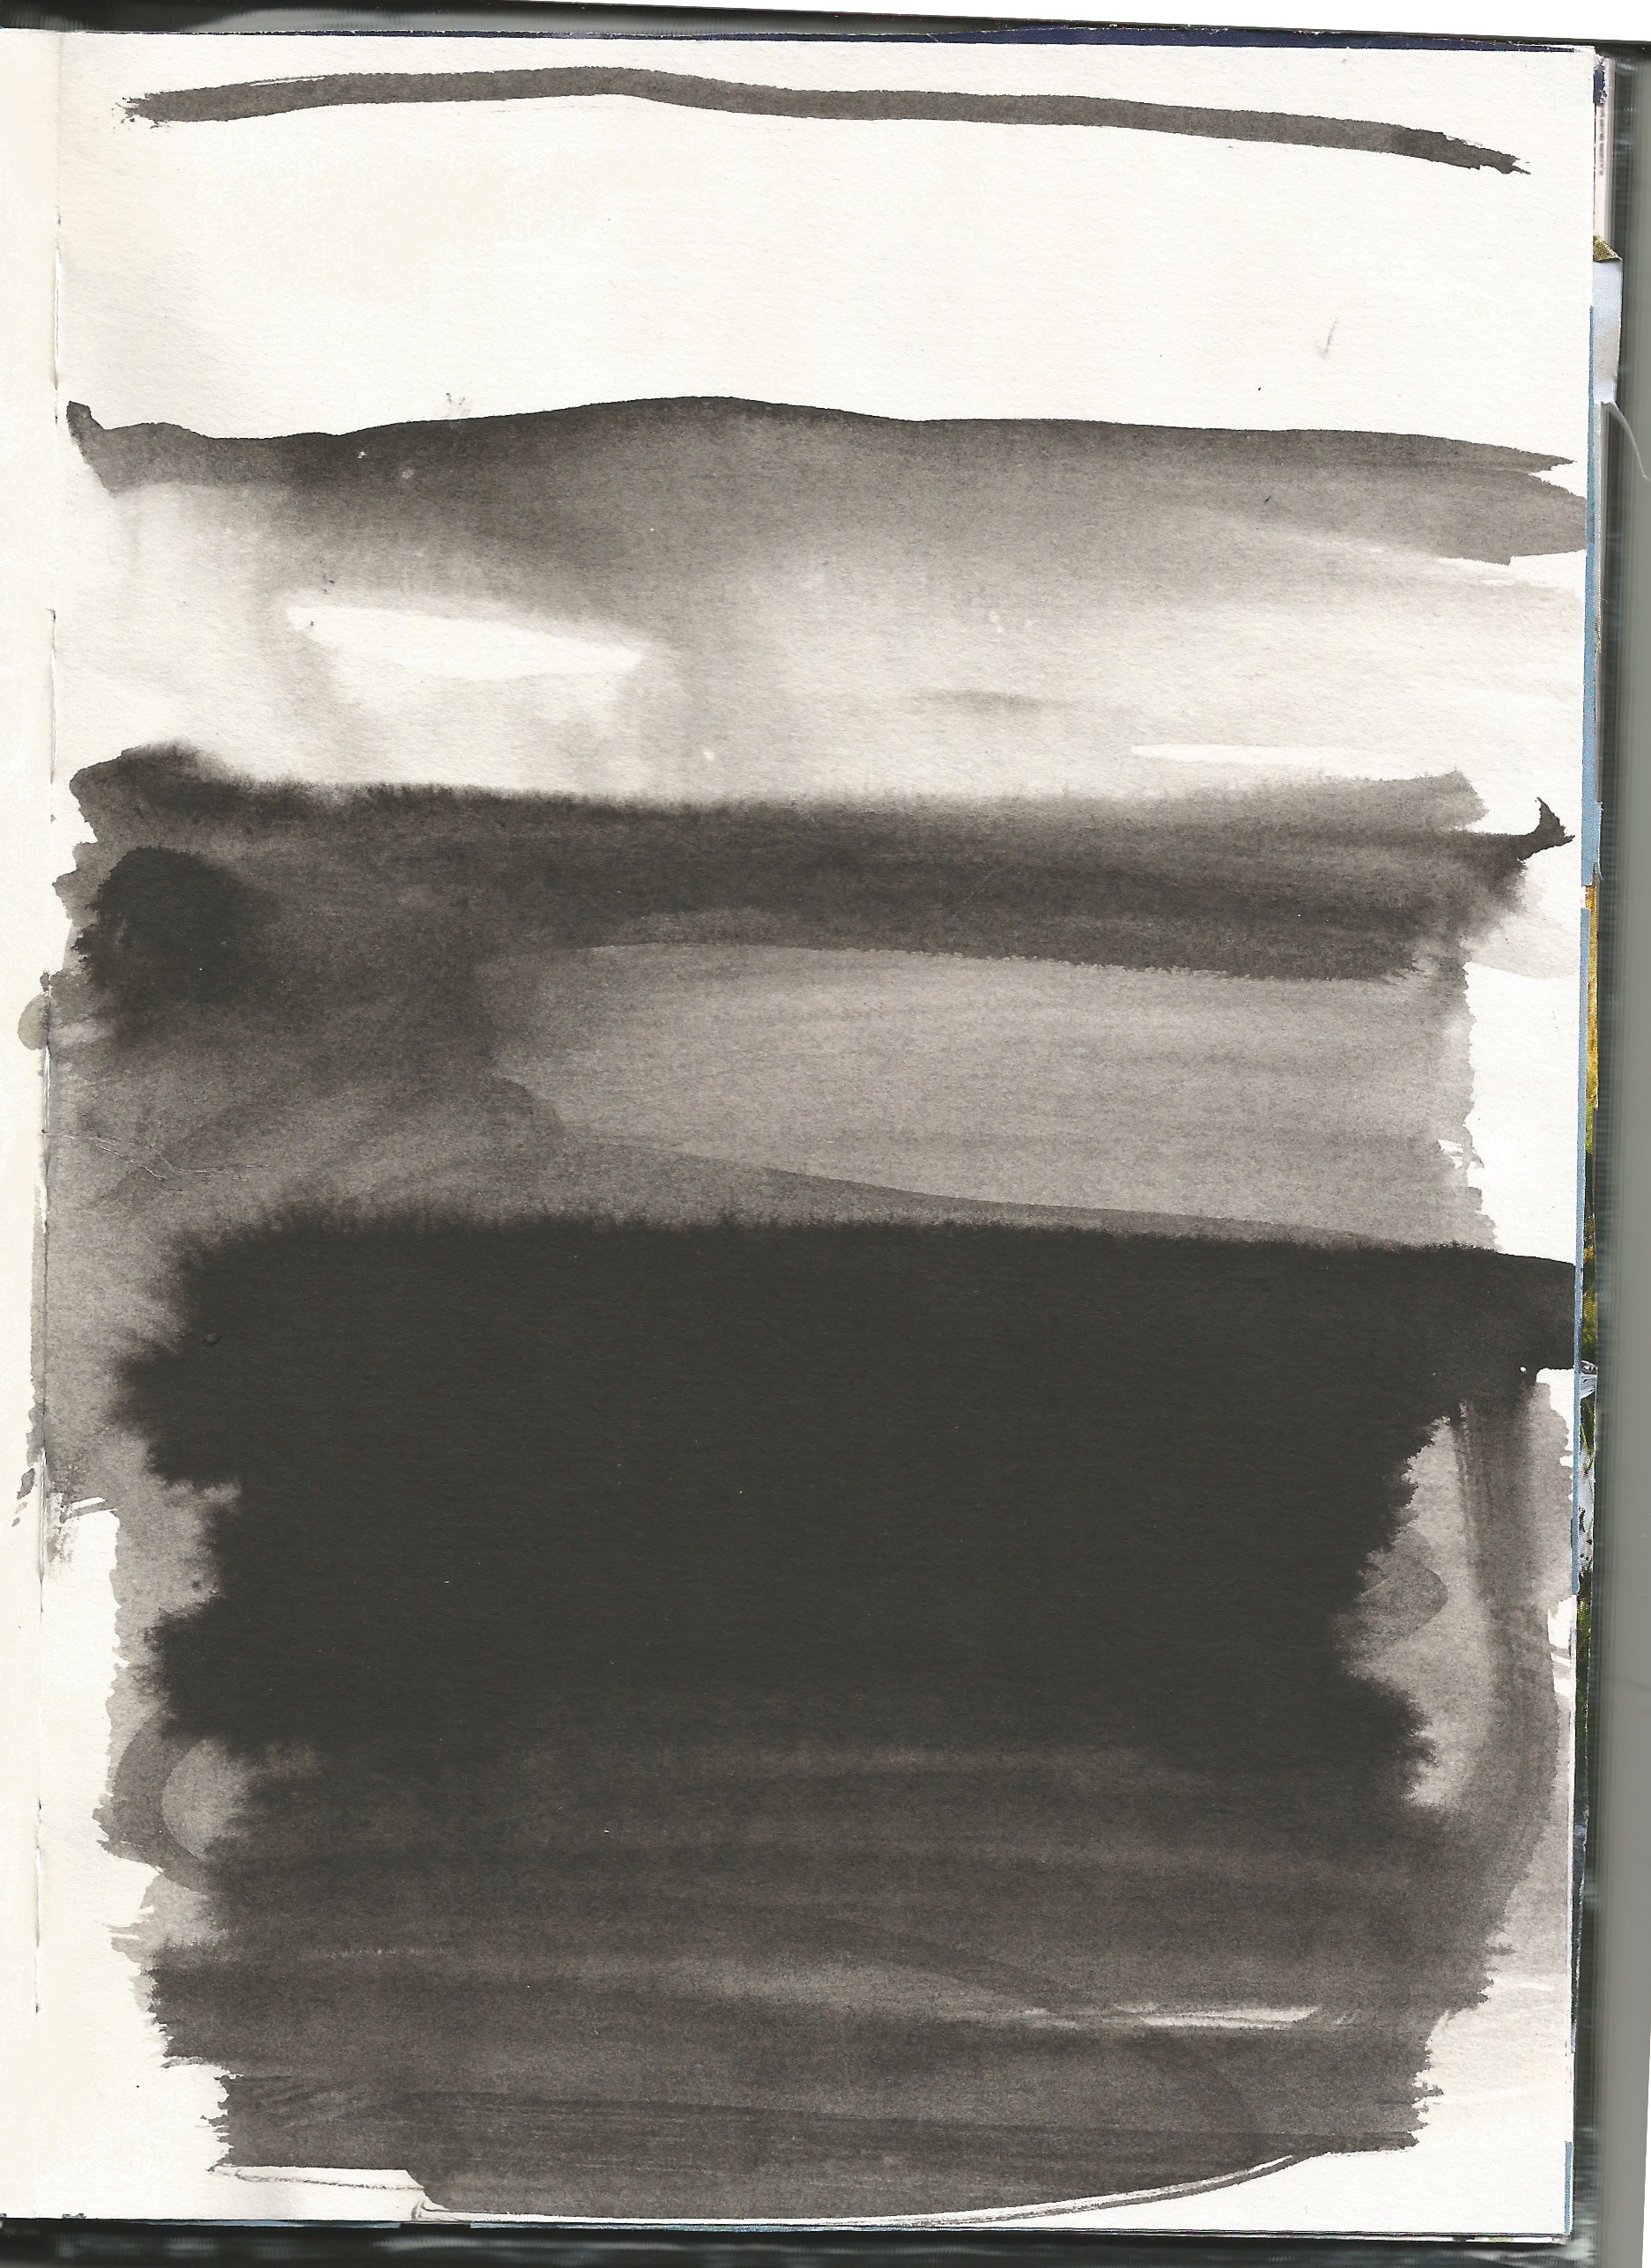 pen, ink, brush, wash - layers, scape